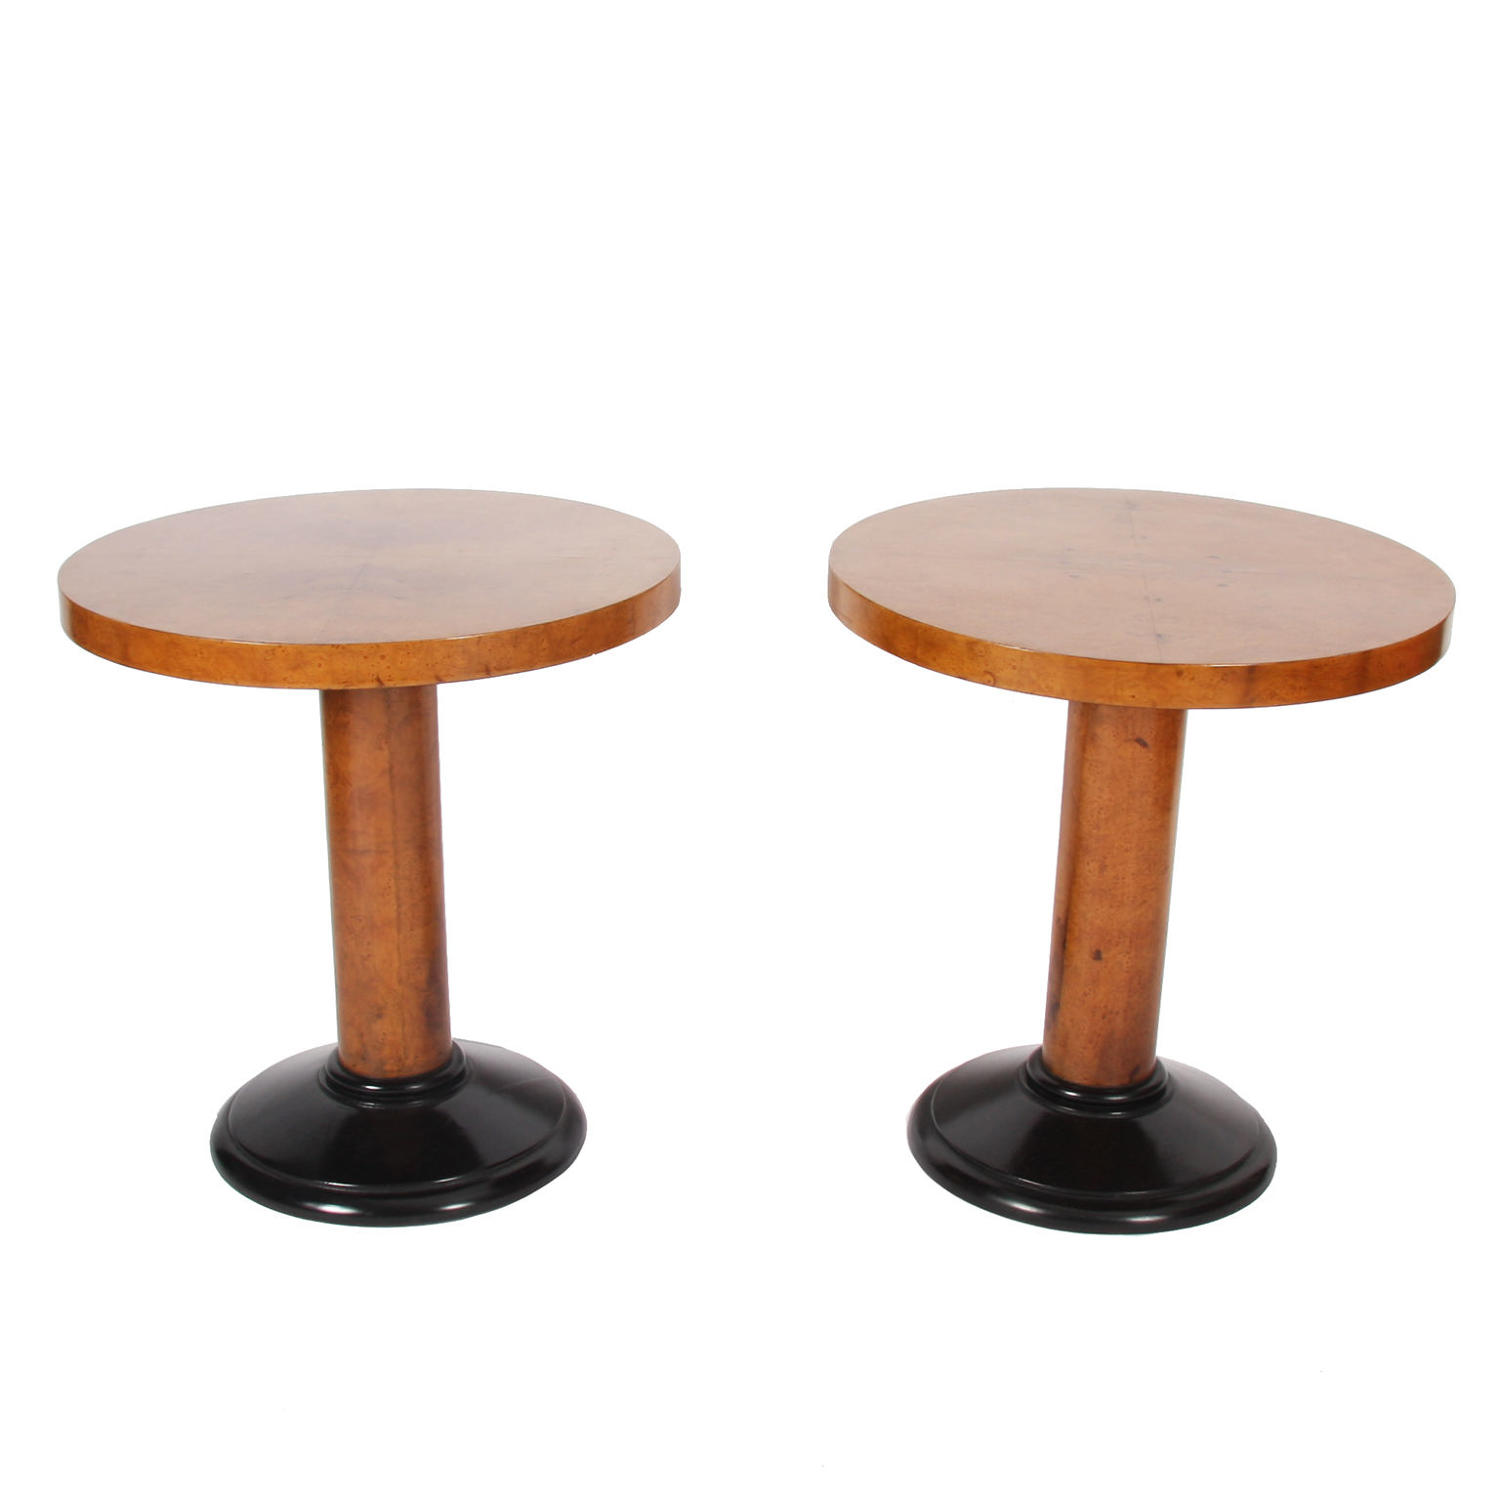 Pair of Maple Veneer Side Tables